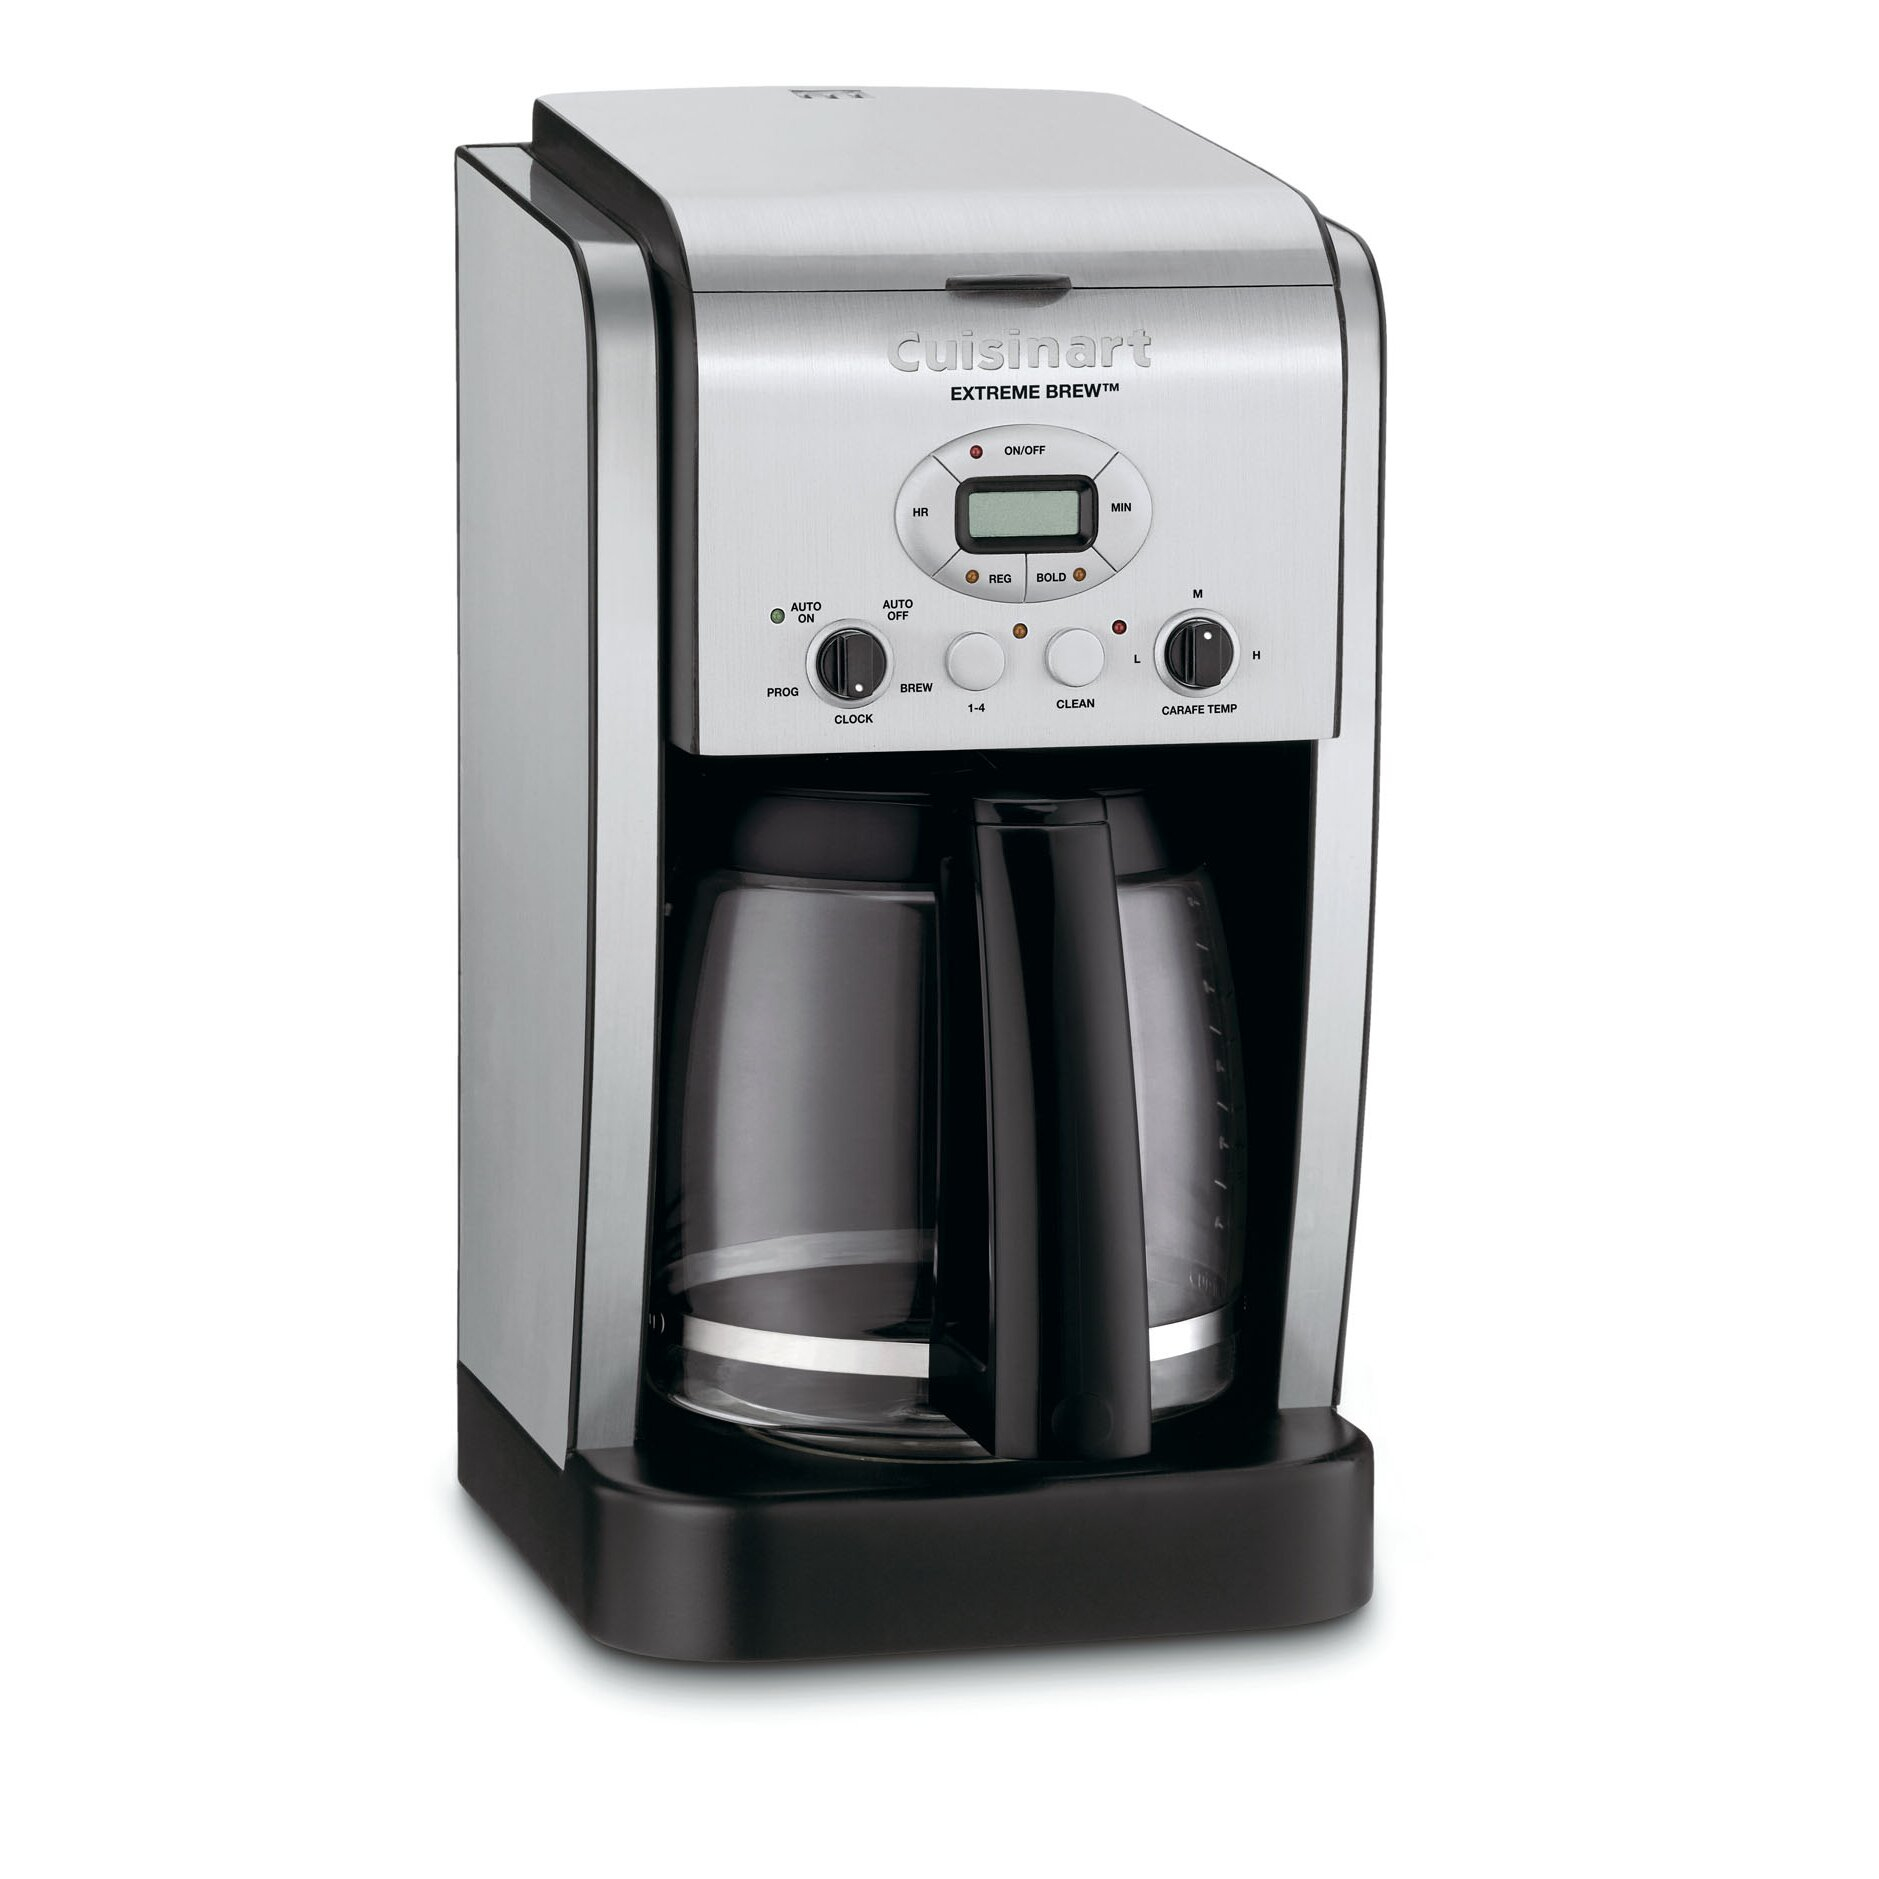 Cuisinart Coffee Maker Fire : Cuisinart Extreme Brew 12 Cup Coffee Maker & Reviews Wayfair